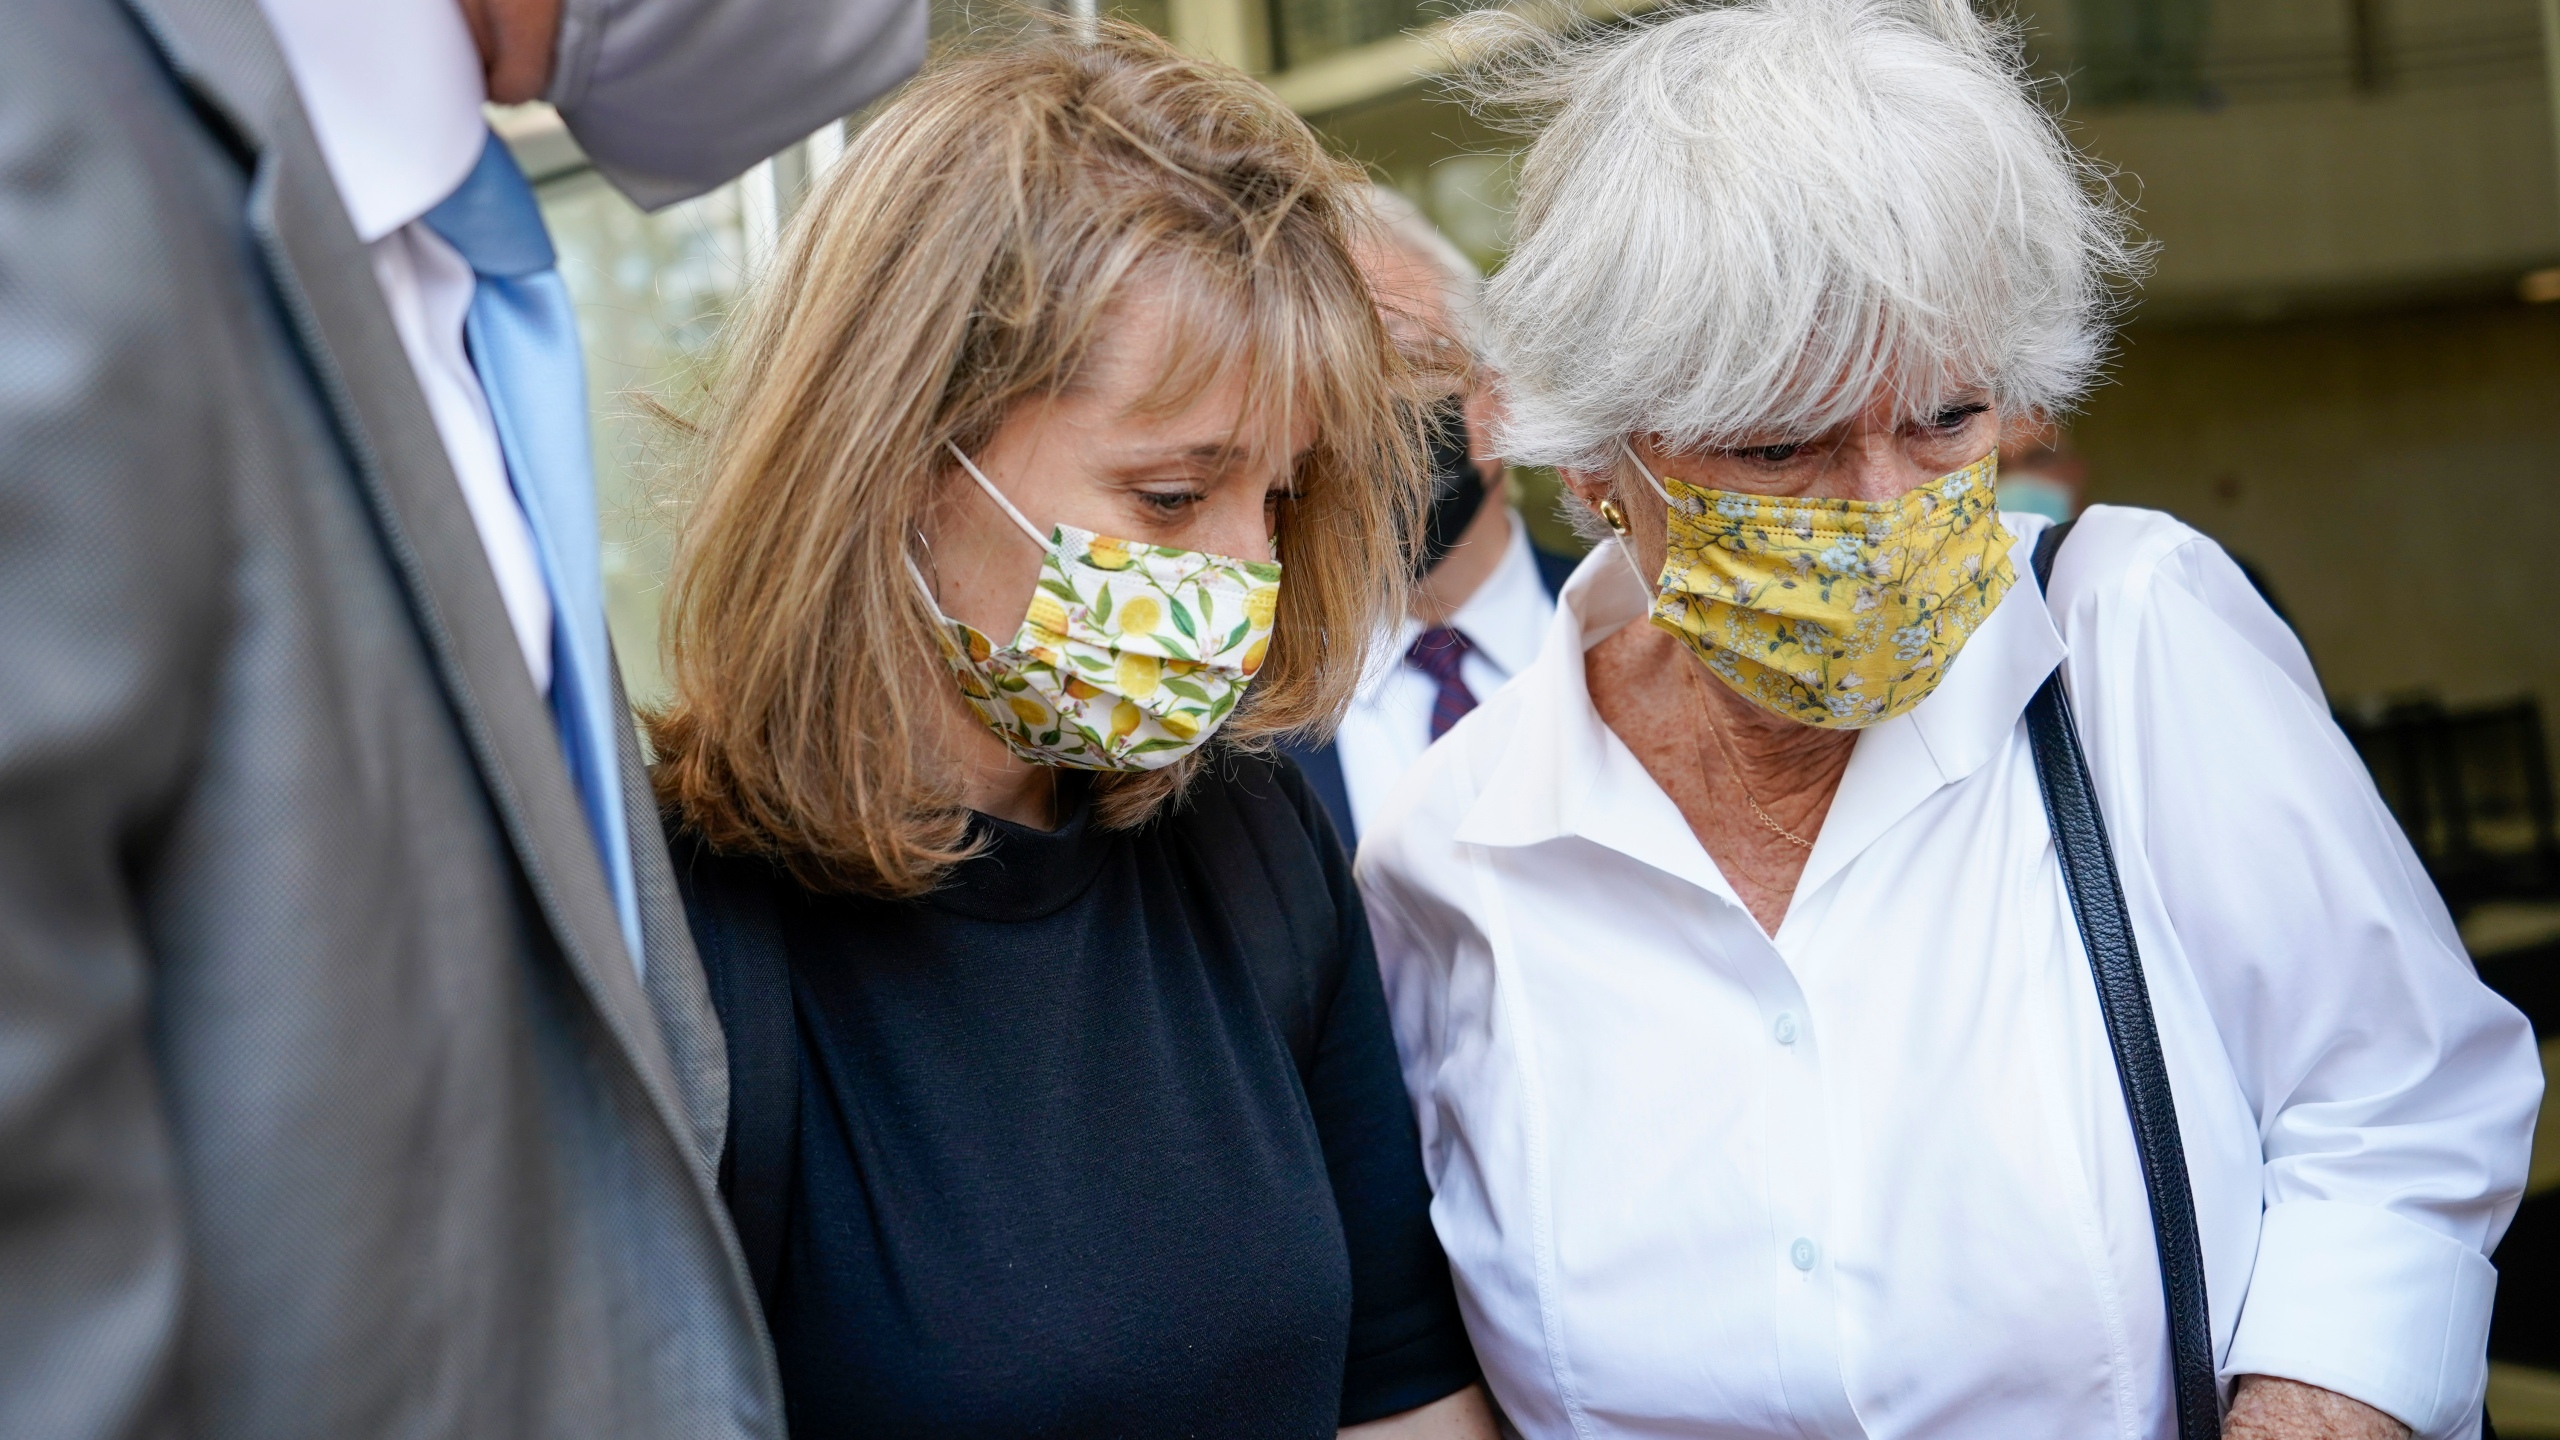 Allison Mack, center, leaves federal court with her mother, Mindy Mack, after being sentenced on June 30, 2021 in New York. (Mary Altaffer/Associated Press)